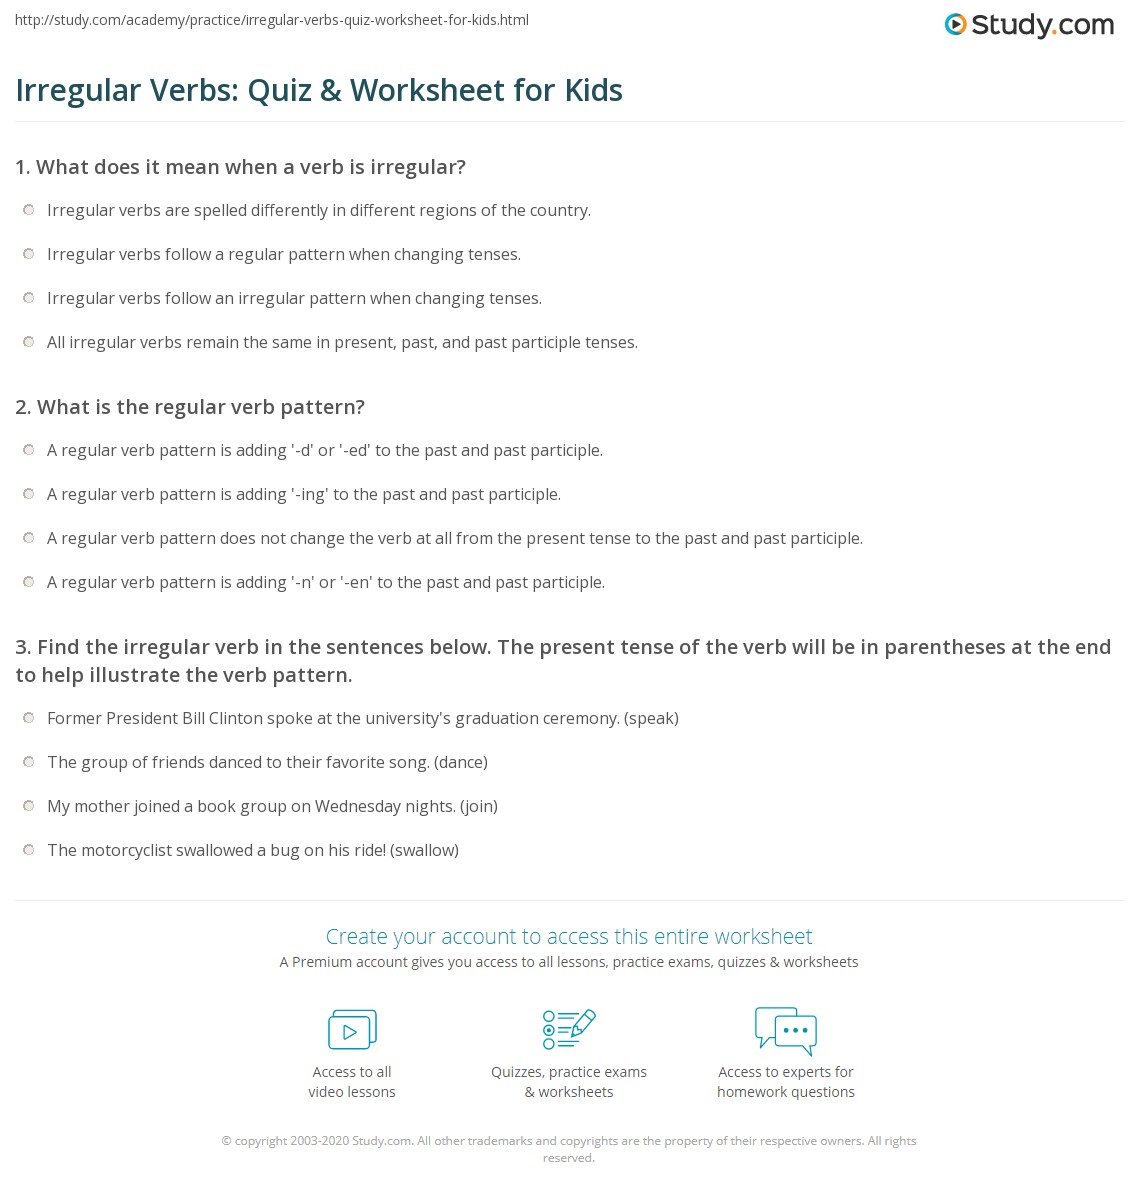 Free Worksheet Irregular Verbs Worksheet irregular verbs quiz worksheet for kids study com print lesson worksheet